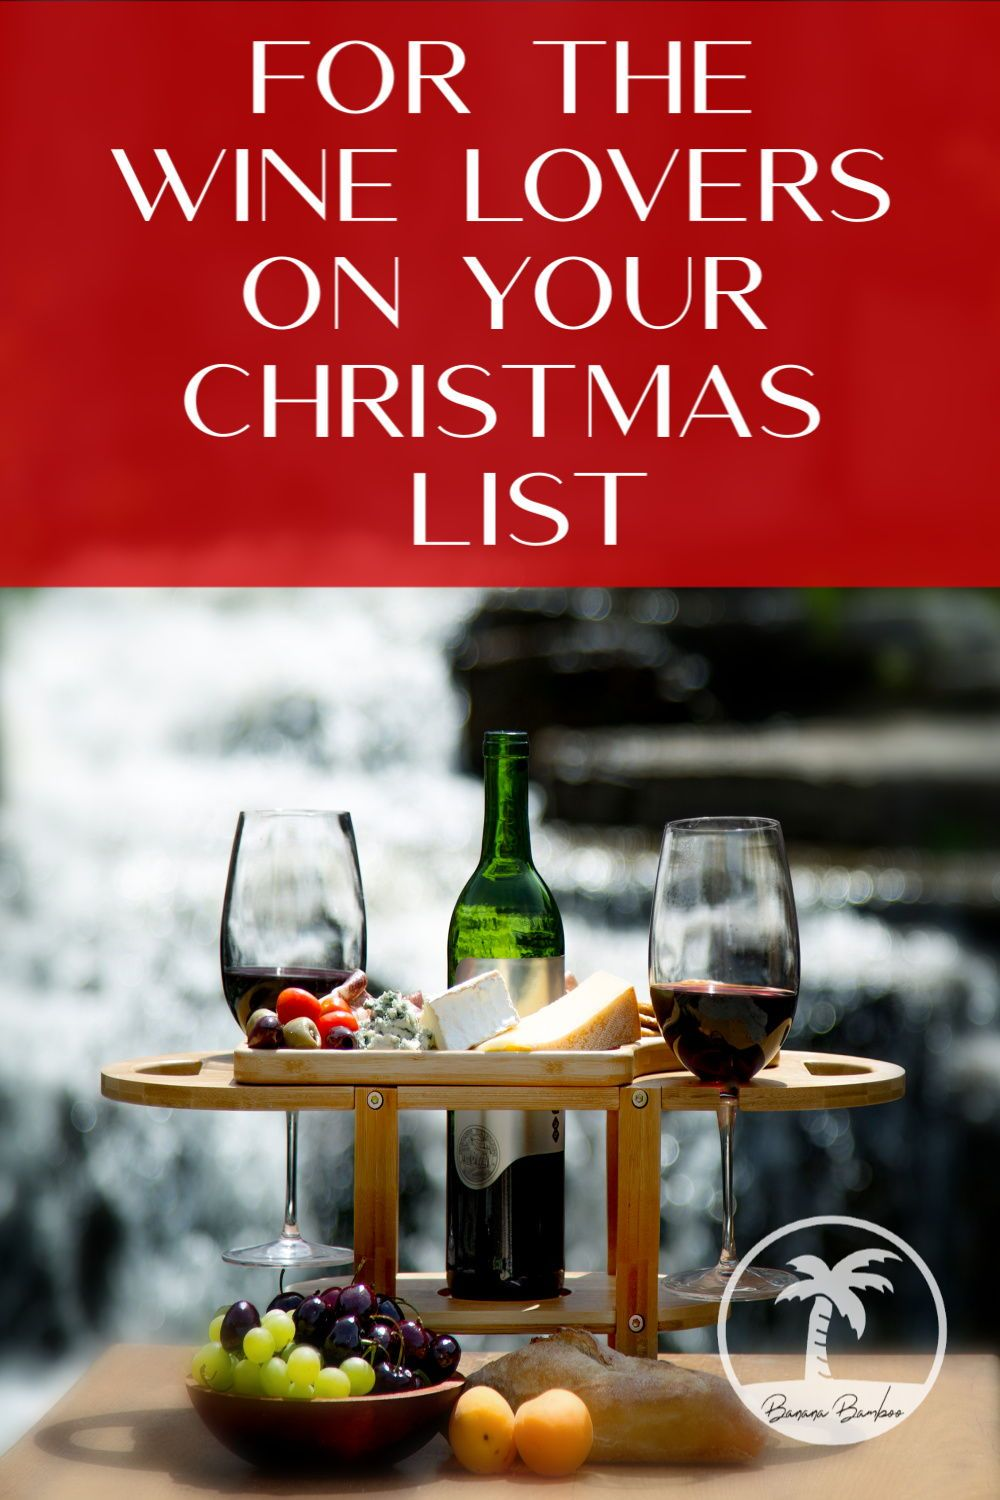 The Perfect Christmas Gift For The Hard To Buy For Person And The Best Gift For The Wine Lovers In Your Lif Gifts For Wine Lovers Wine Lovers Unique Gift Items